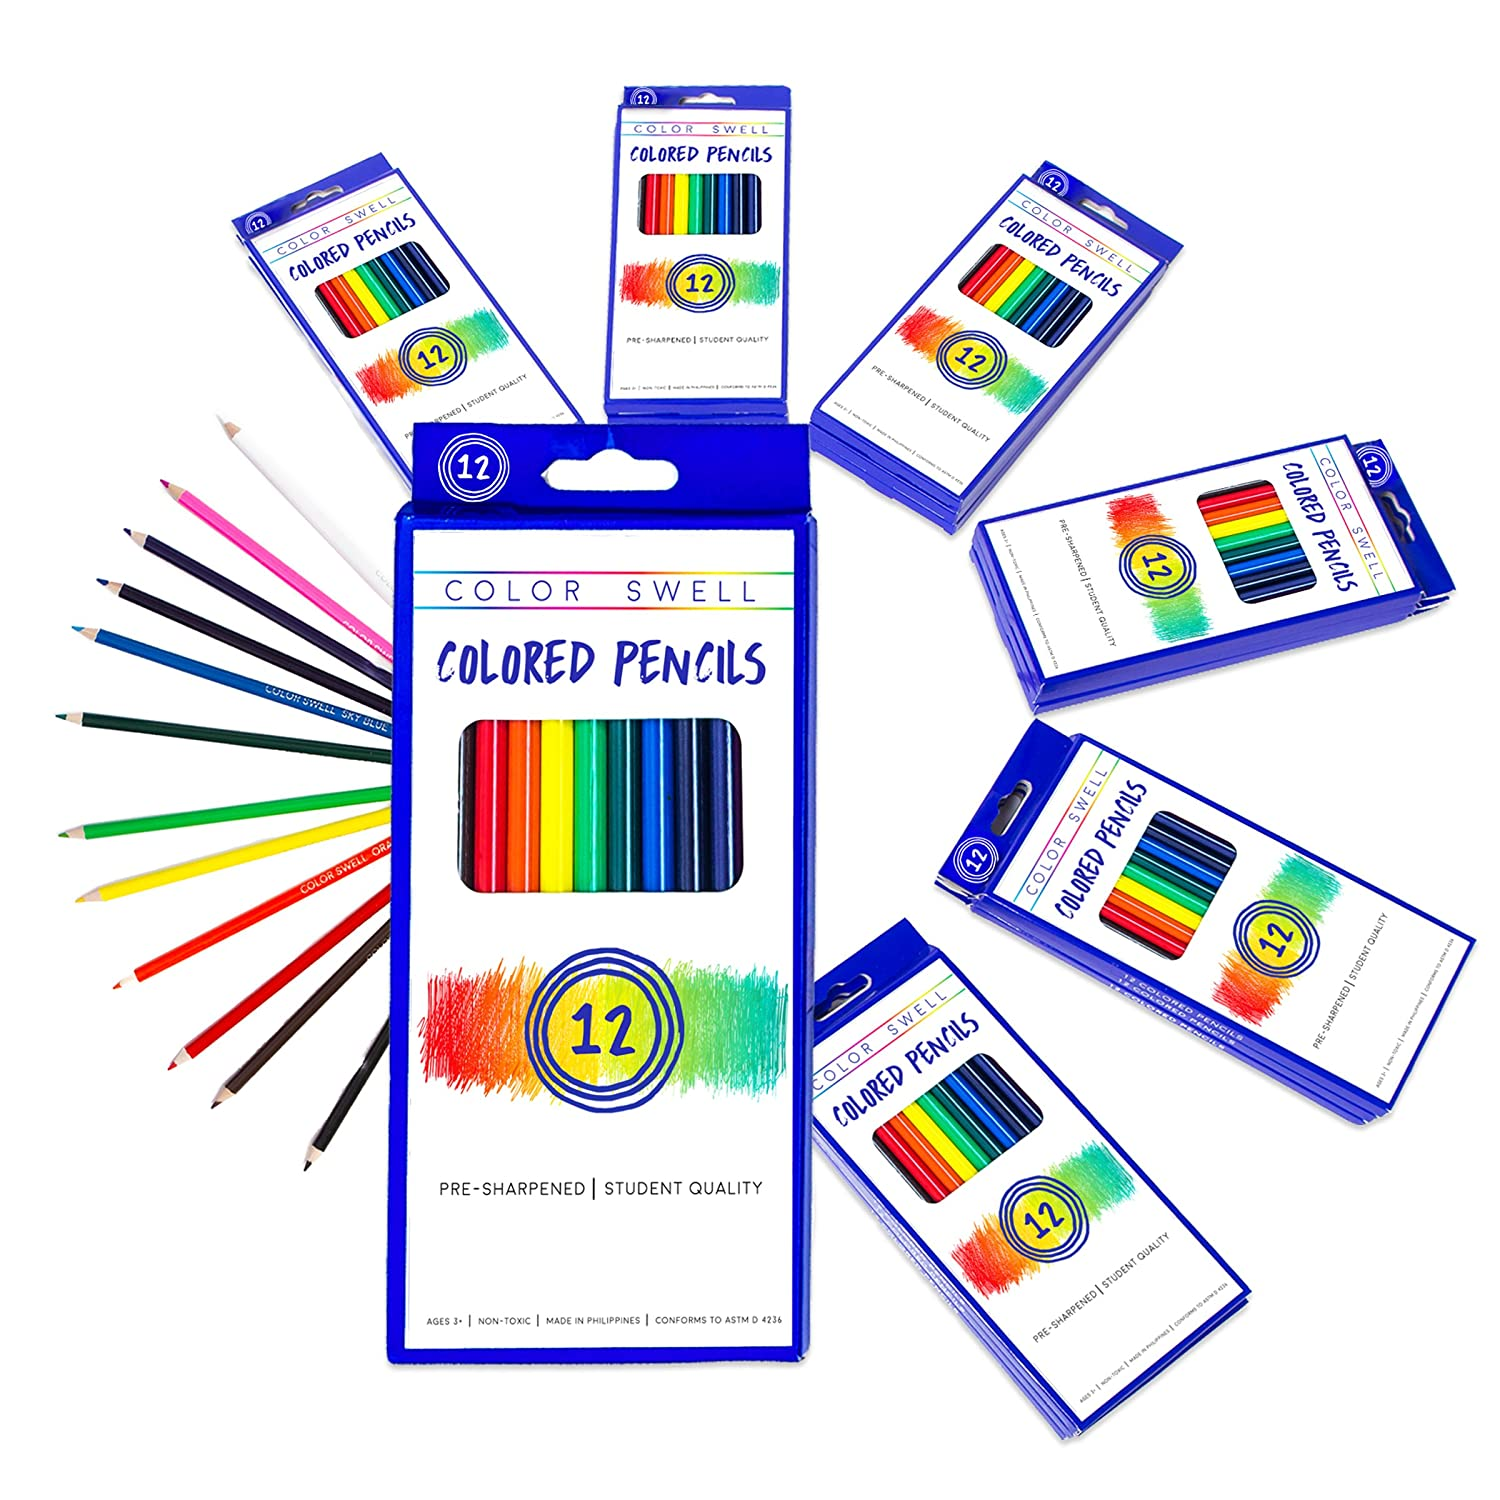 Color Swell Colored Pencils Bulk Pack 30 Sets 12 Count Assorted Vibrant Colors 360 Total Perfect for Kids, Teachers and Classrooms Swell Goods FBA_color2